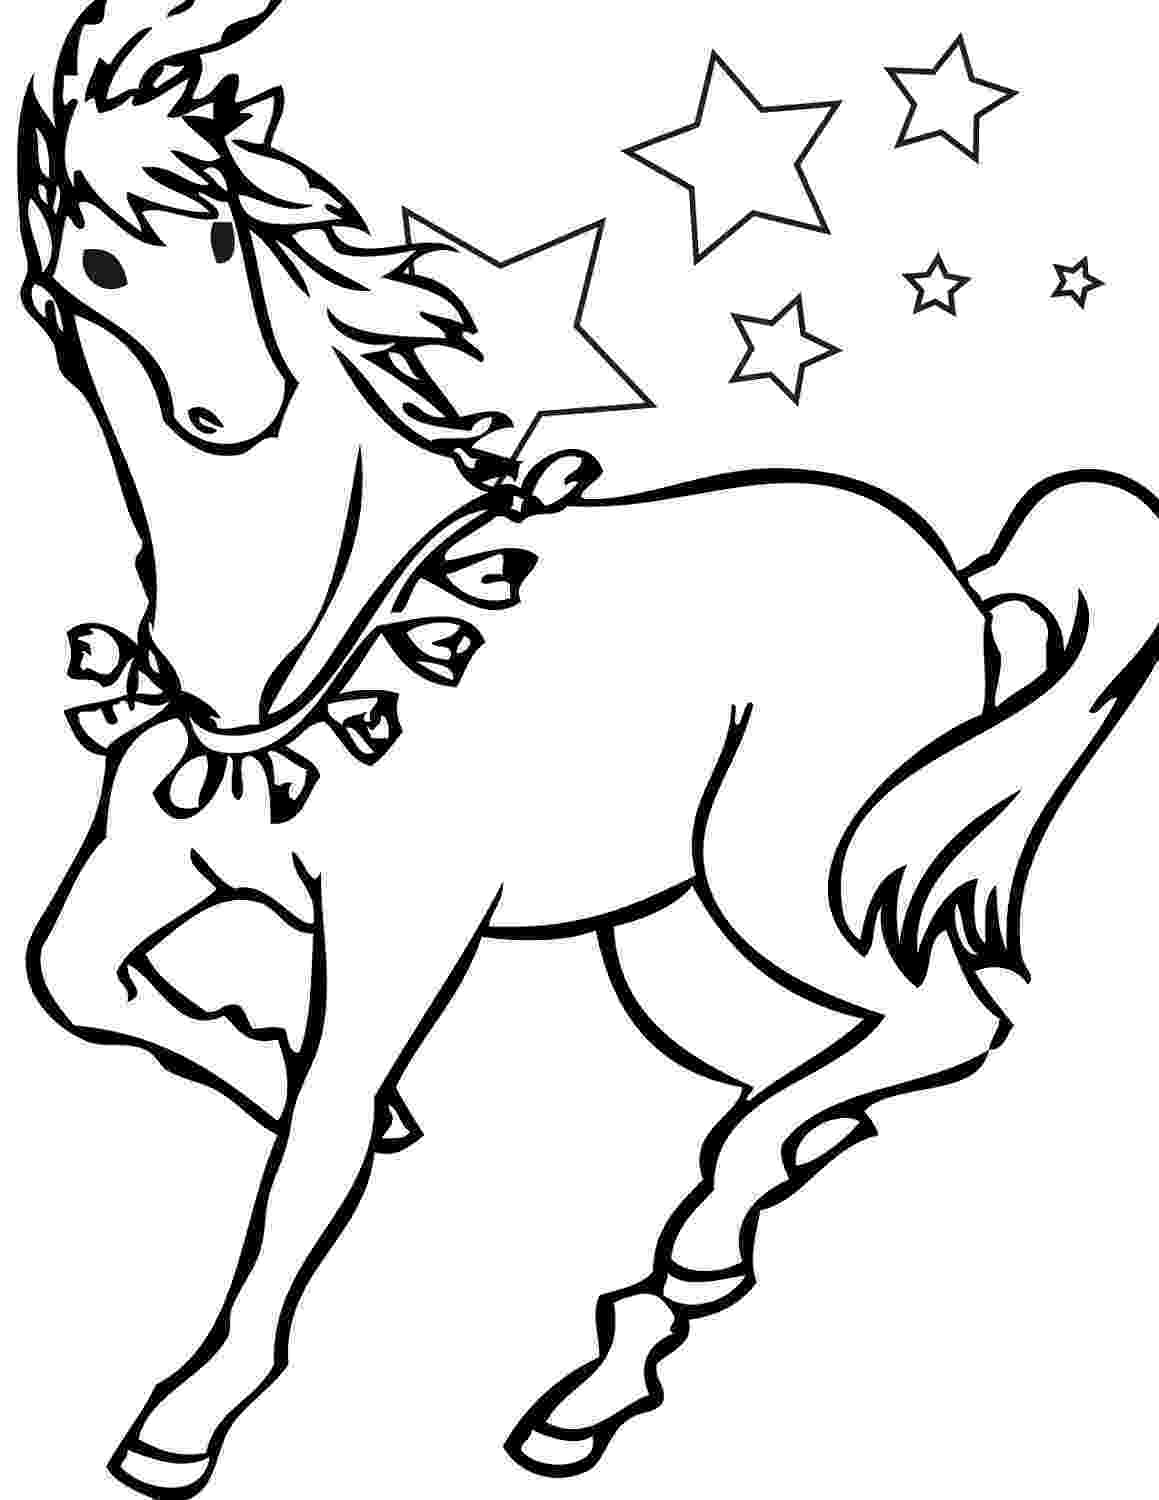 picture of a horse to color interactive magazine horse coloring pictures to picture of horse a color